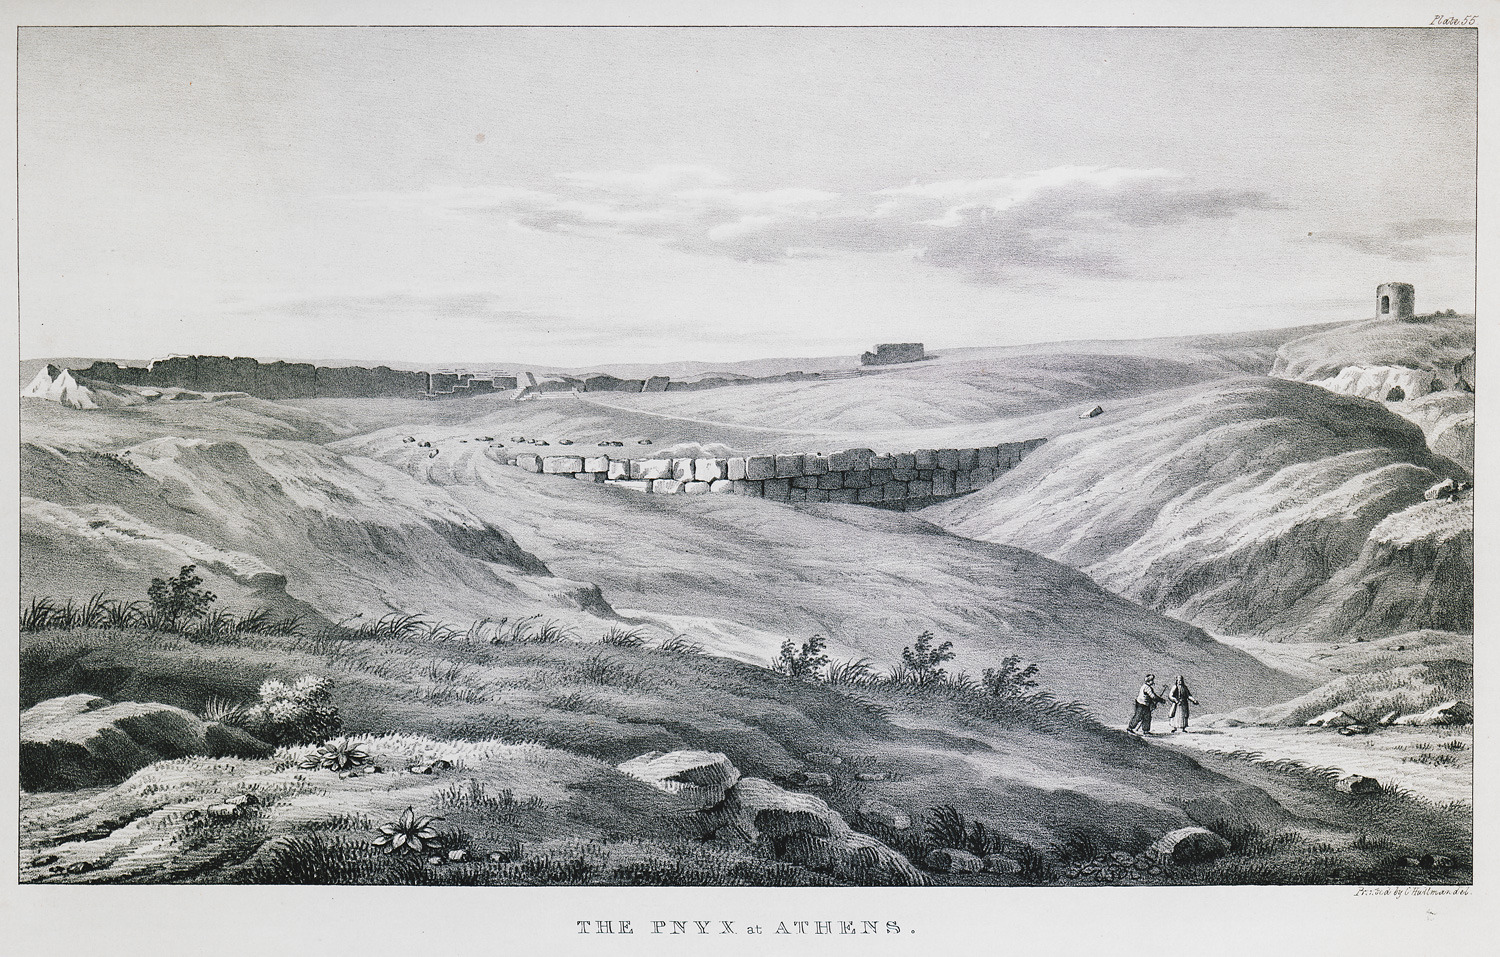 The slopes of the Pnyx through centuries; to the right, the wind mill before being ruined (The Gennadius Library - American School of Classical Studies at Athens, from the website of the Aikaterini Laskaridi Foundation).